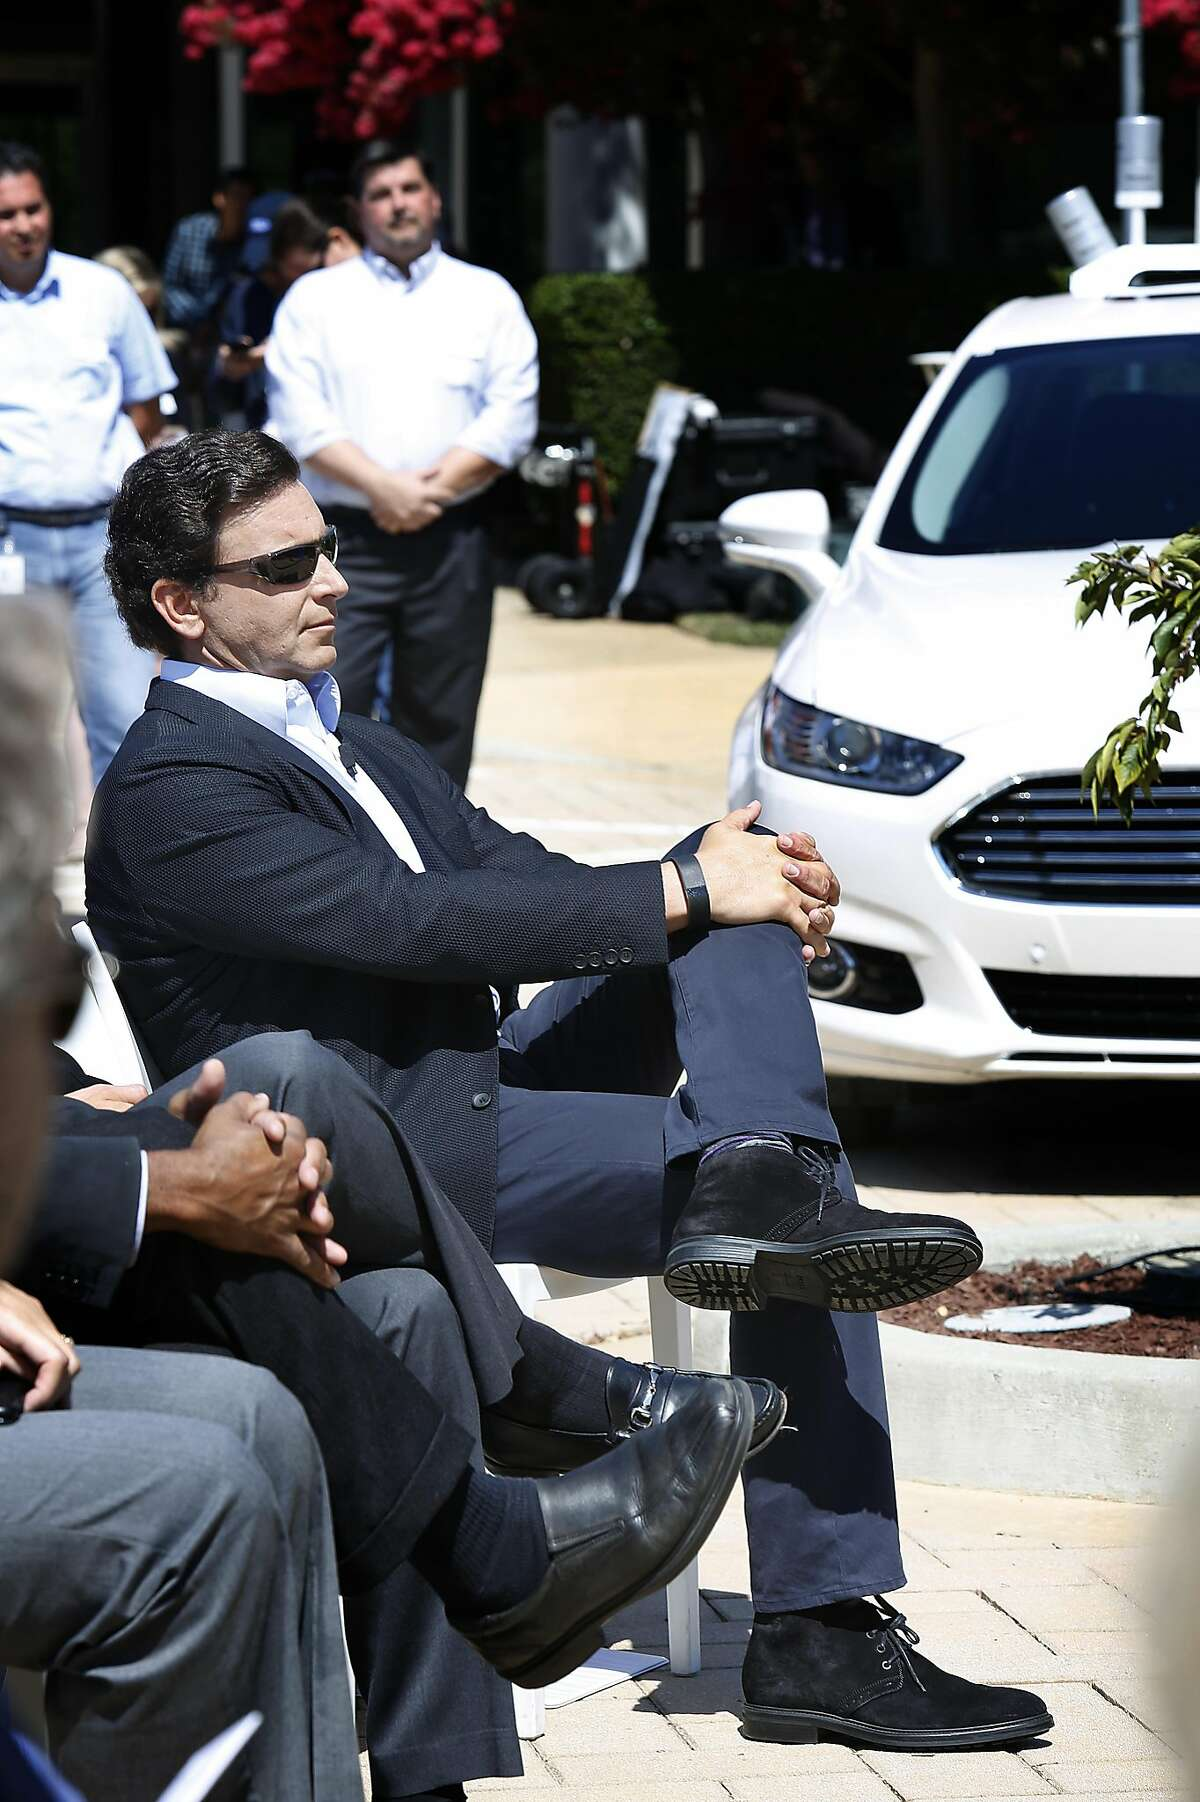 Ford CEO Mark Fields (middle with sunglasses) visits his company's research center in Palo Alto in August. As part of its development of driveless cars, Ford will invest $1 billion over five years in Argo AI, a Pittsburgh startup specializing in machine learning.